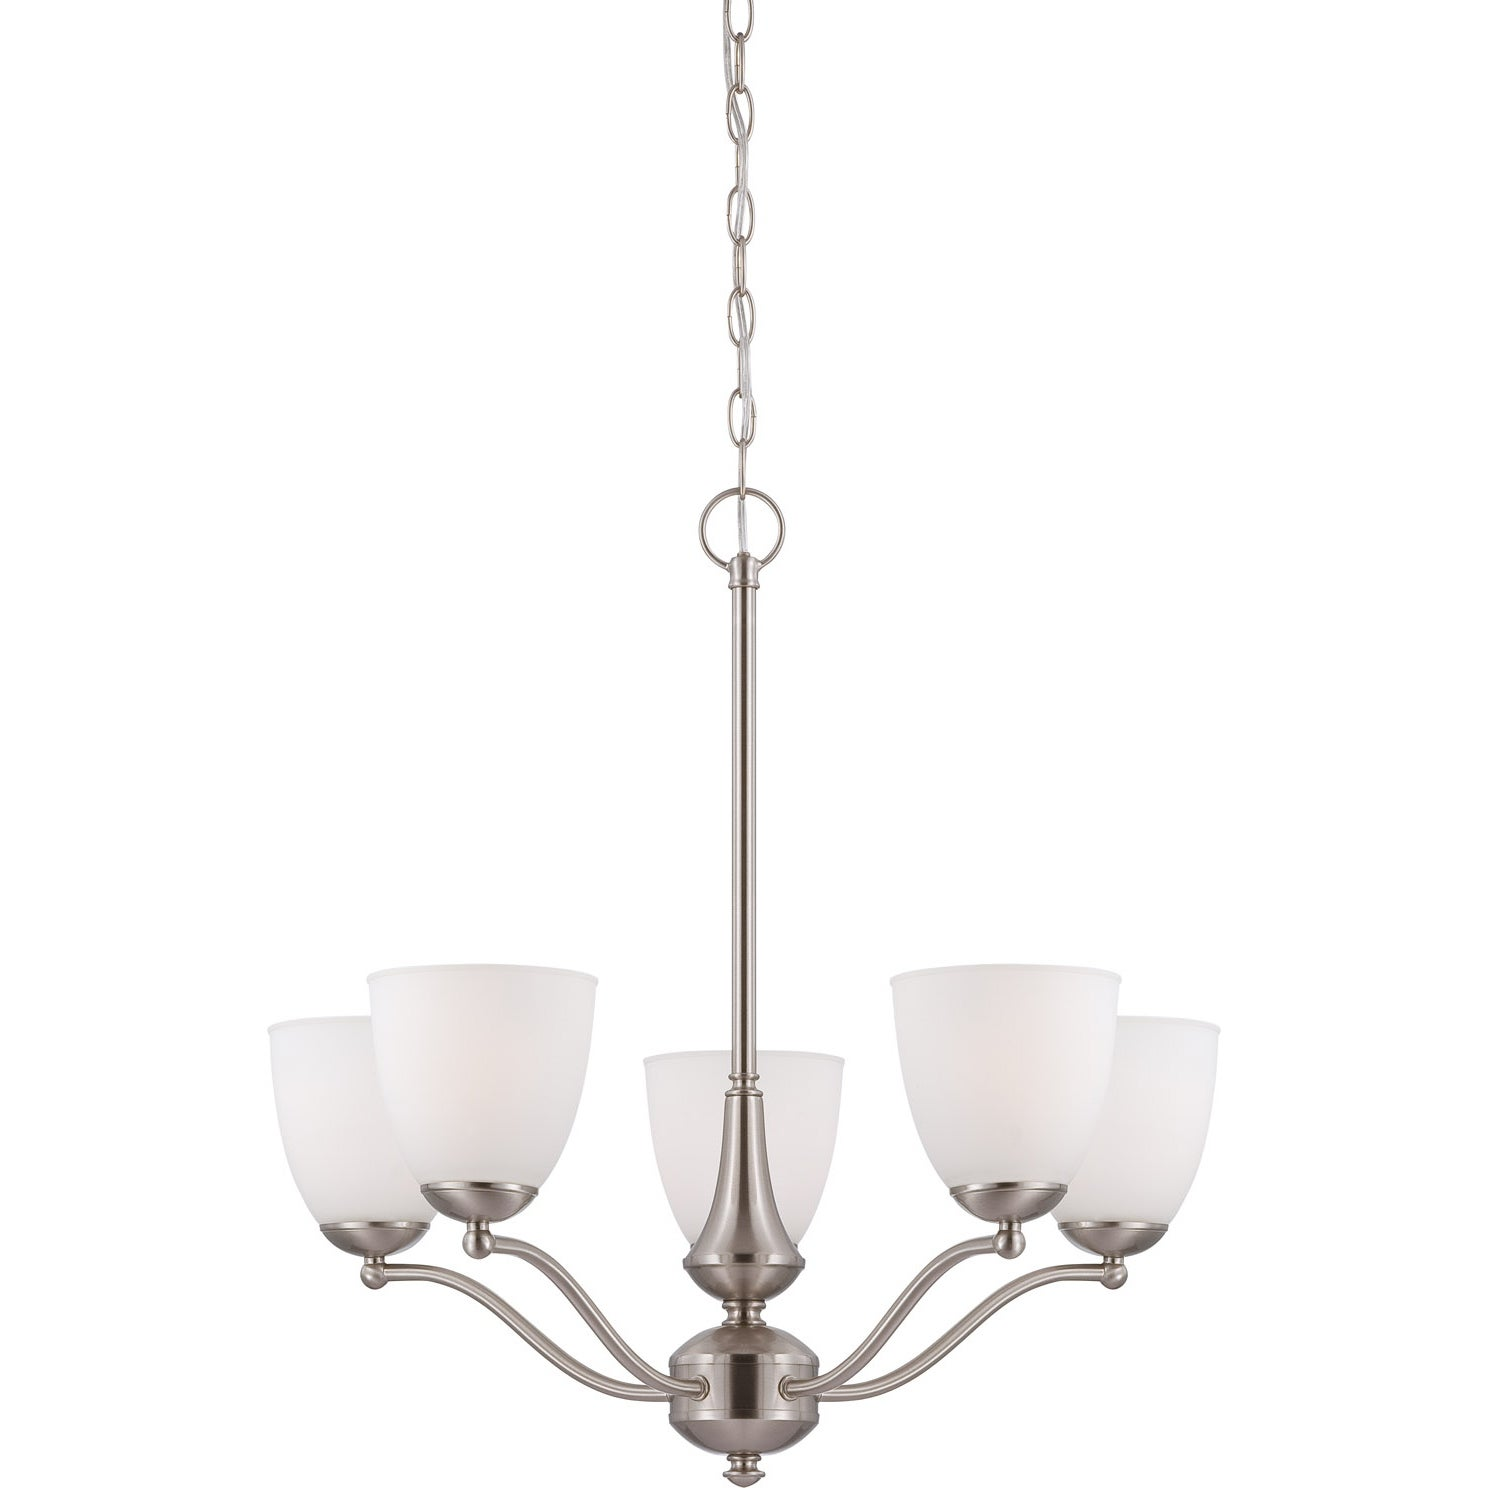 Nuvo 'Patton' Five-Light Brushed-Nickel Glass Chandelier